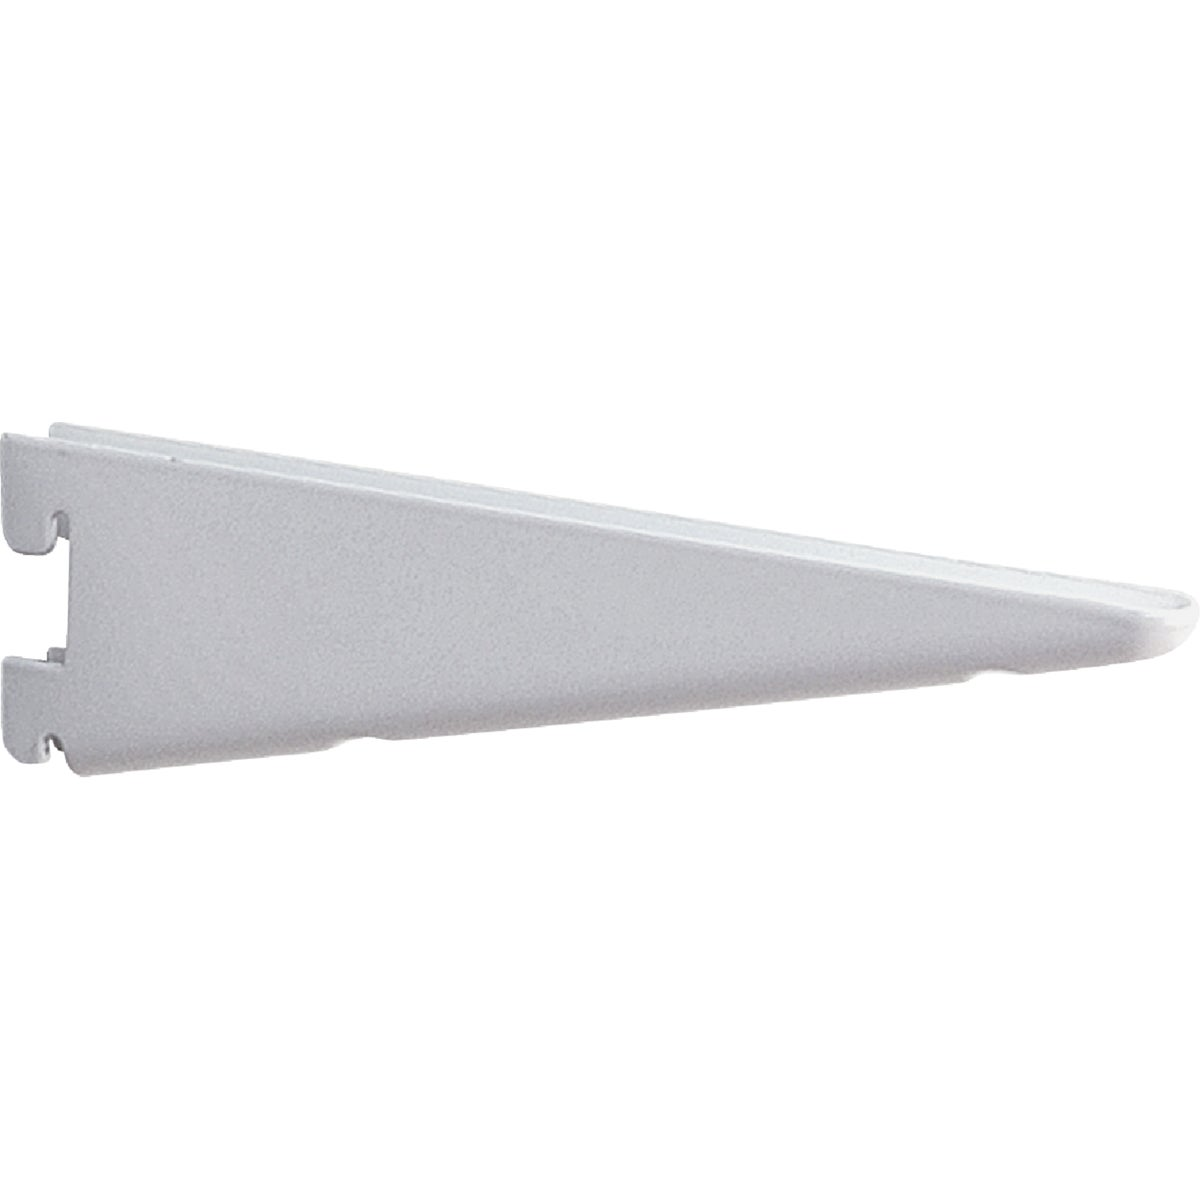 "7"" WHITE BRACKET - 182WH7 by Knape & Vogt Mfg Co"